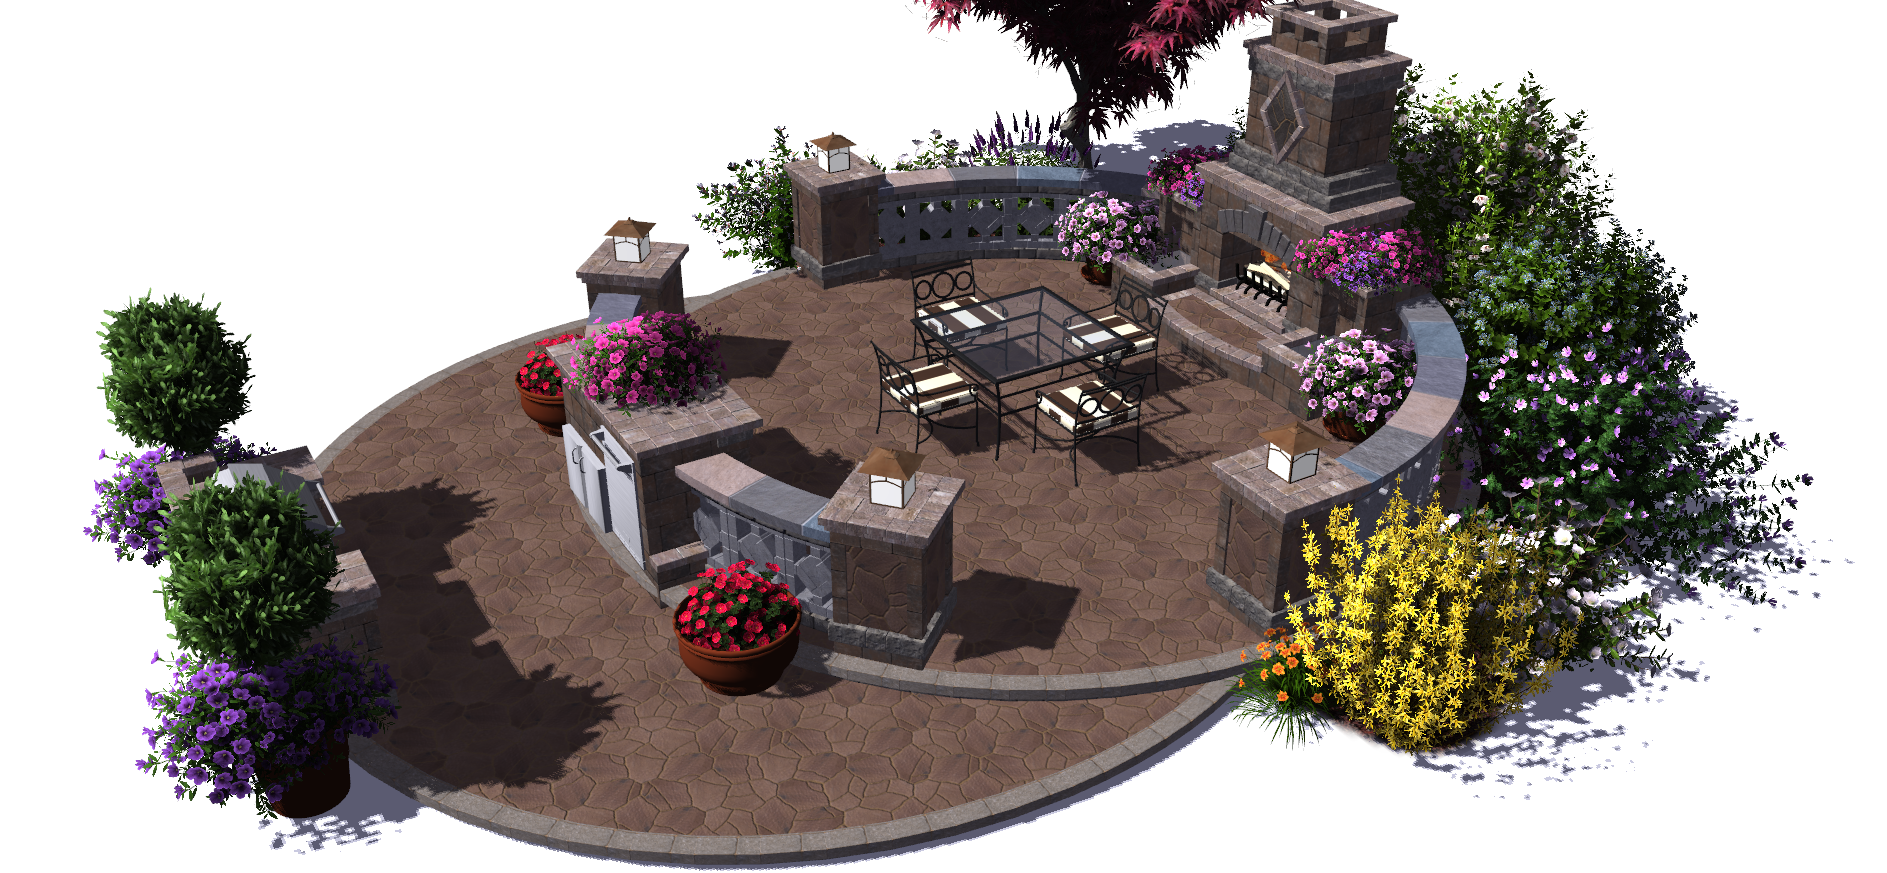 Visionscape interactive llc transforms landscape design for Virtual garden design